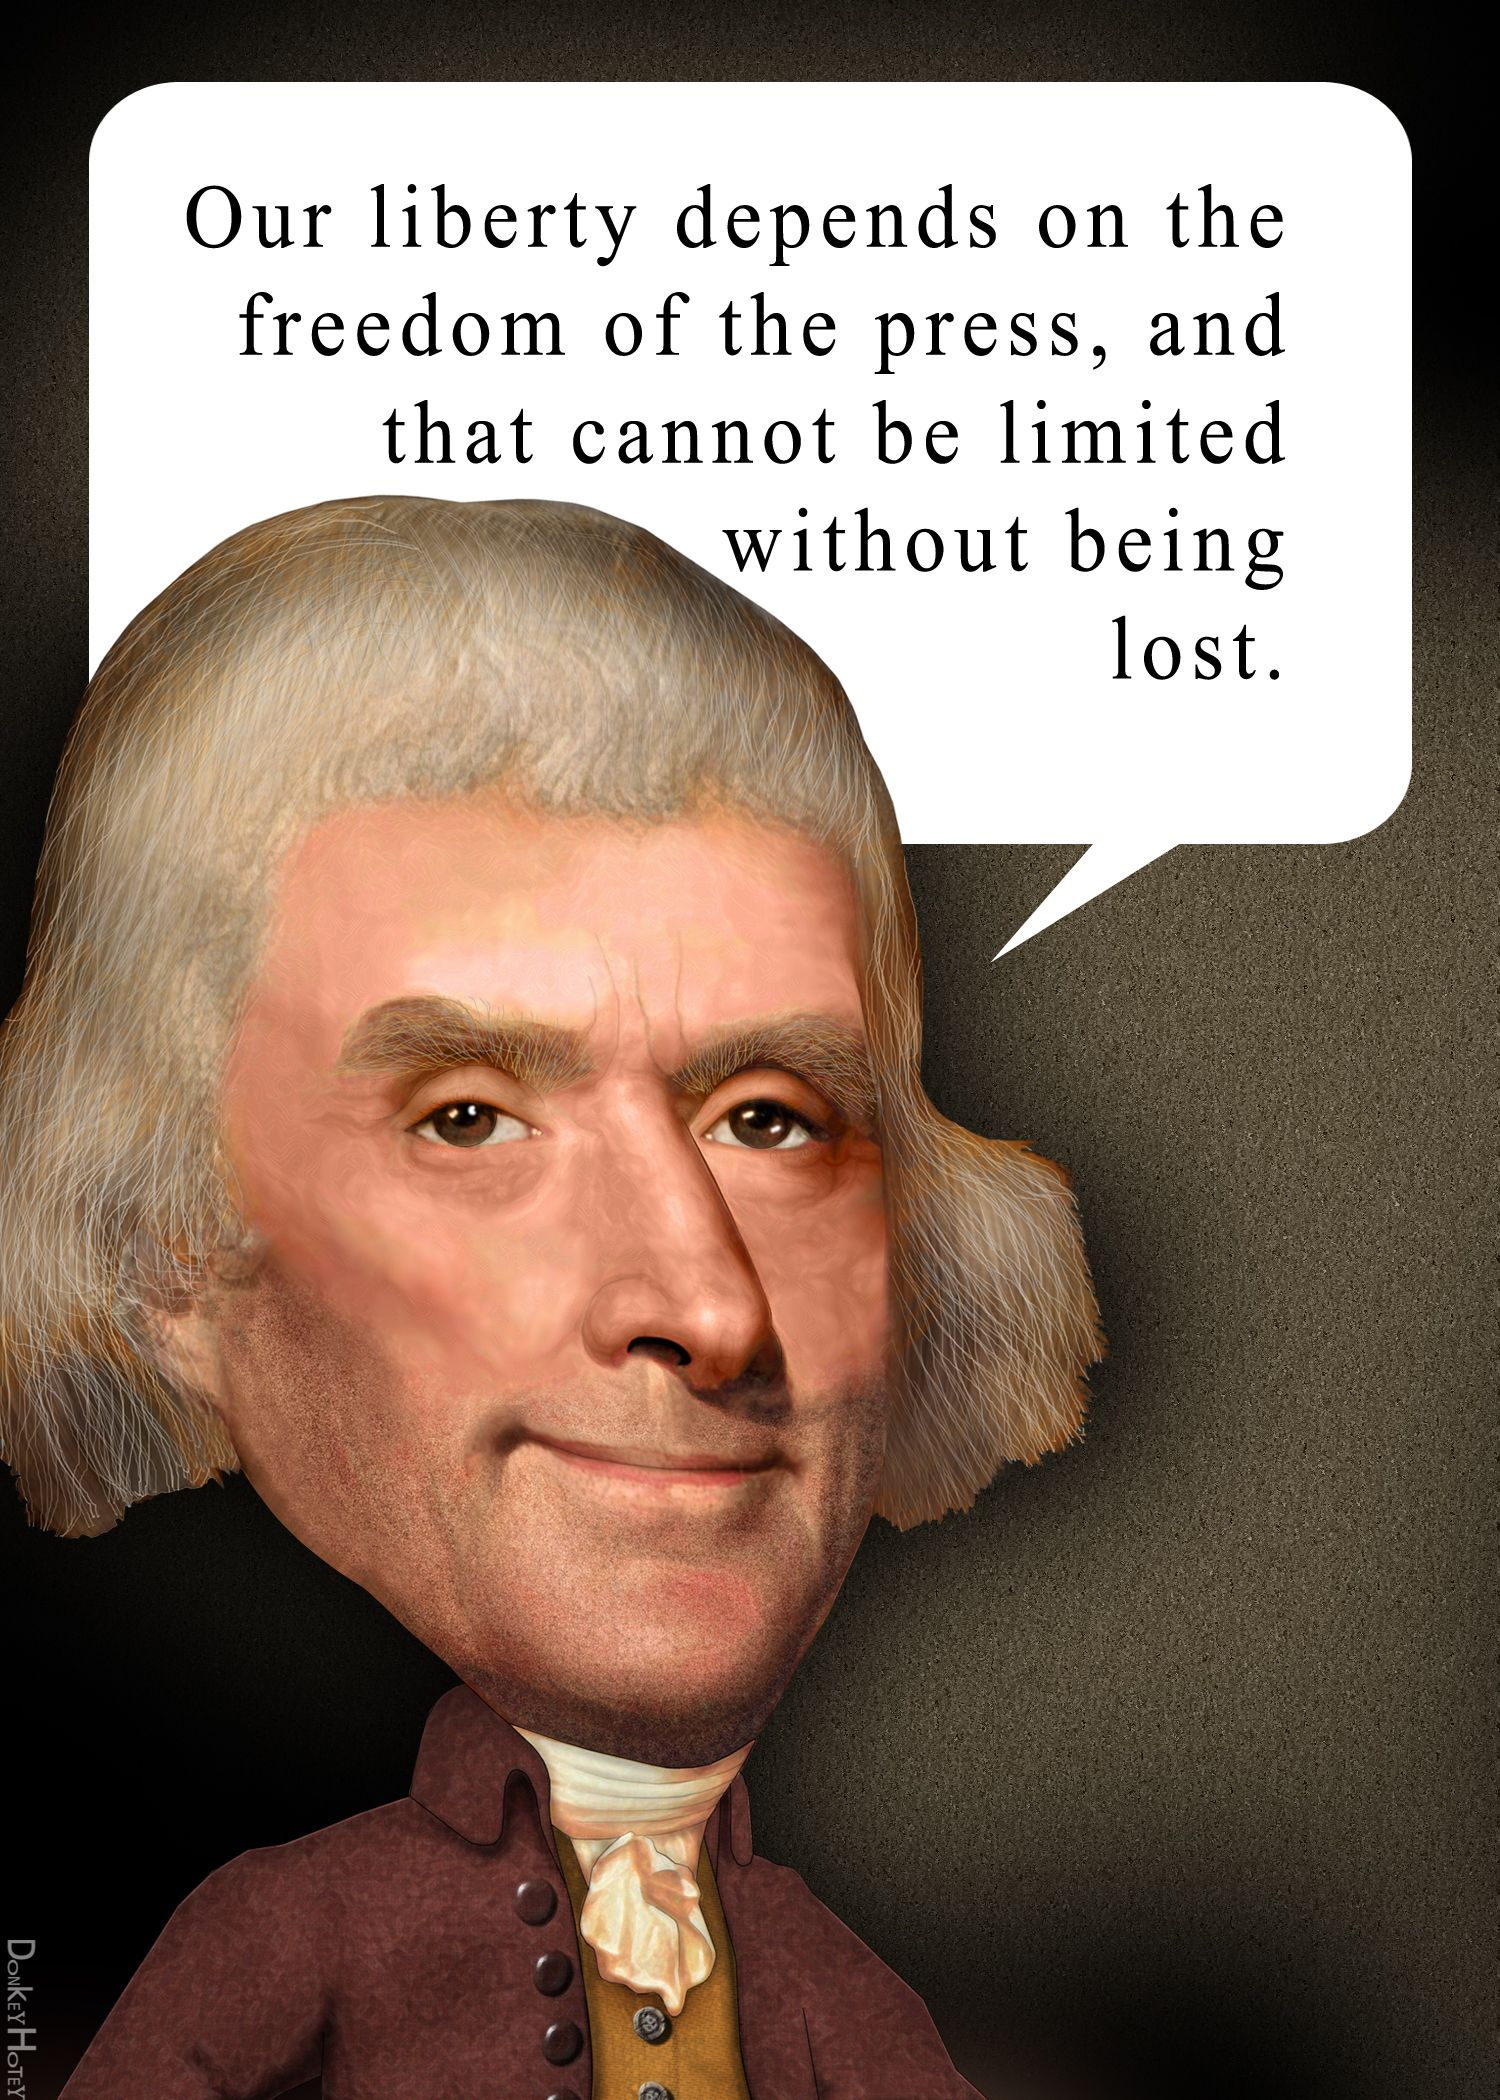 Thomas Jefferson Quotes Impressive Thomas Jefferson Quotes  Google Search  Inspiration  Pinterest